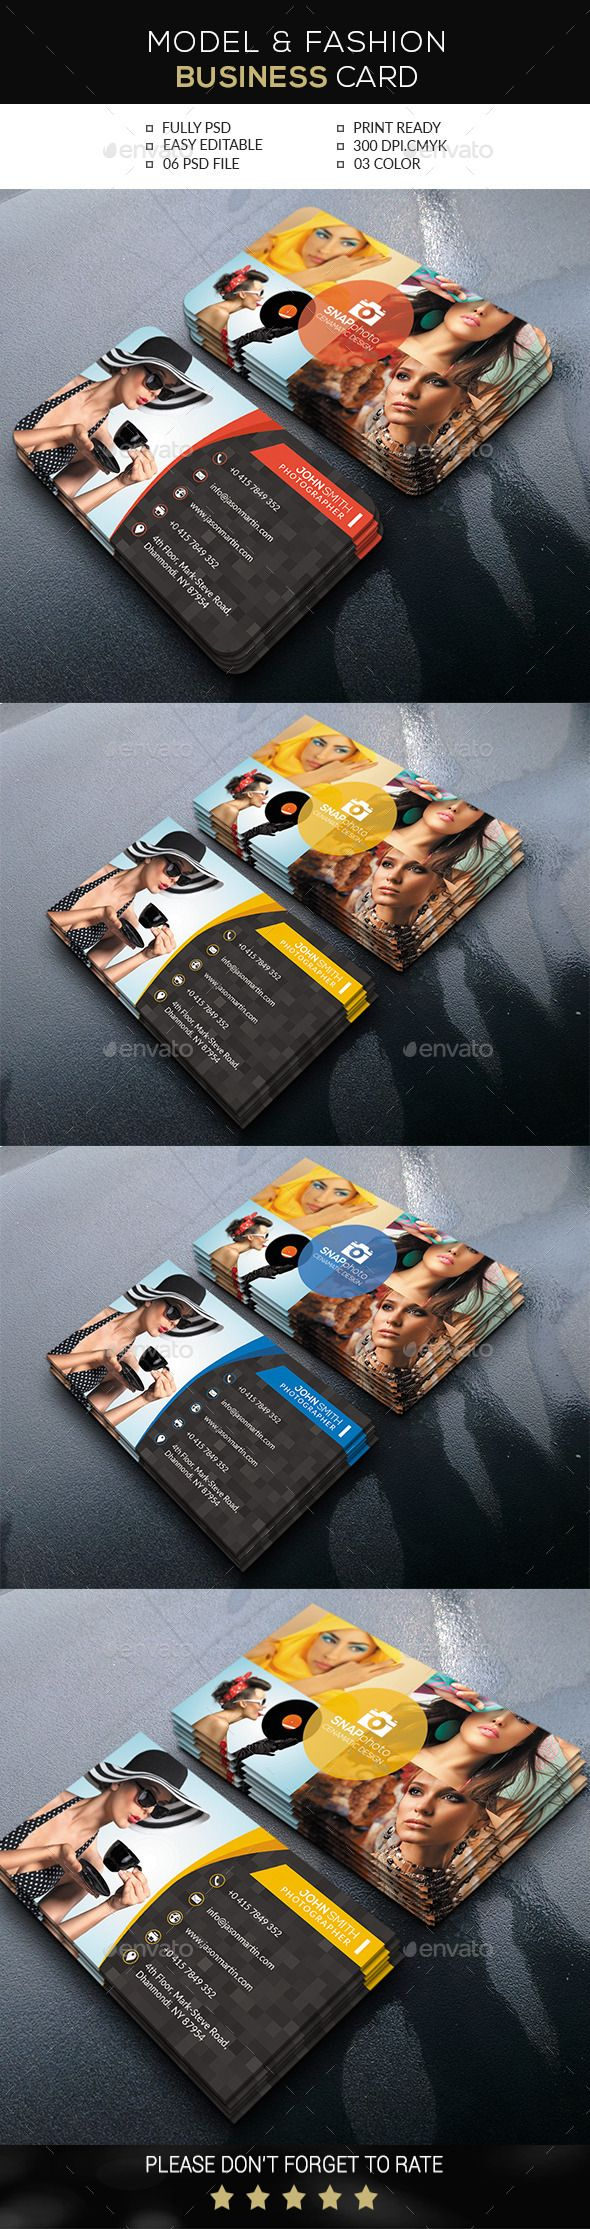 Model & Fashion Business Card Template #design Download: http://graphicriver.net/item/model-fashion-business-card/12333620?ref=ksioks